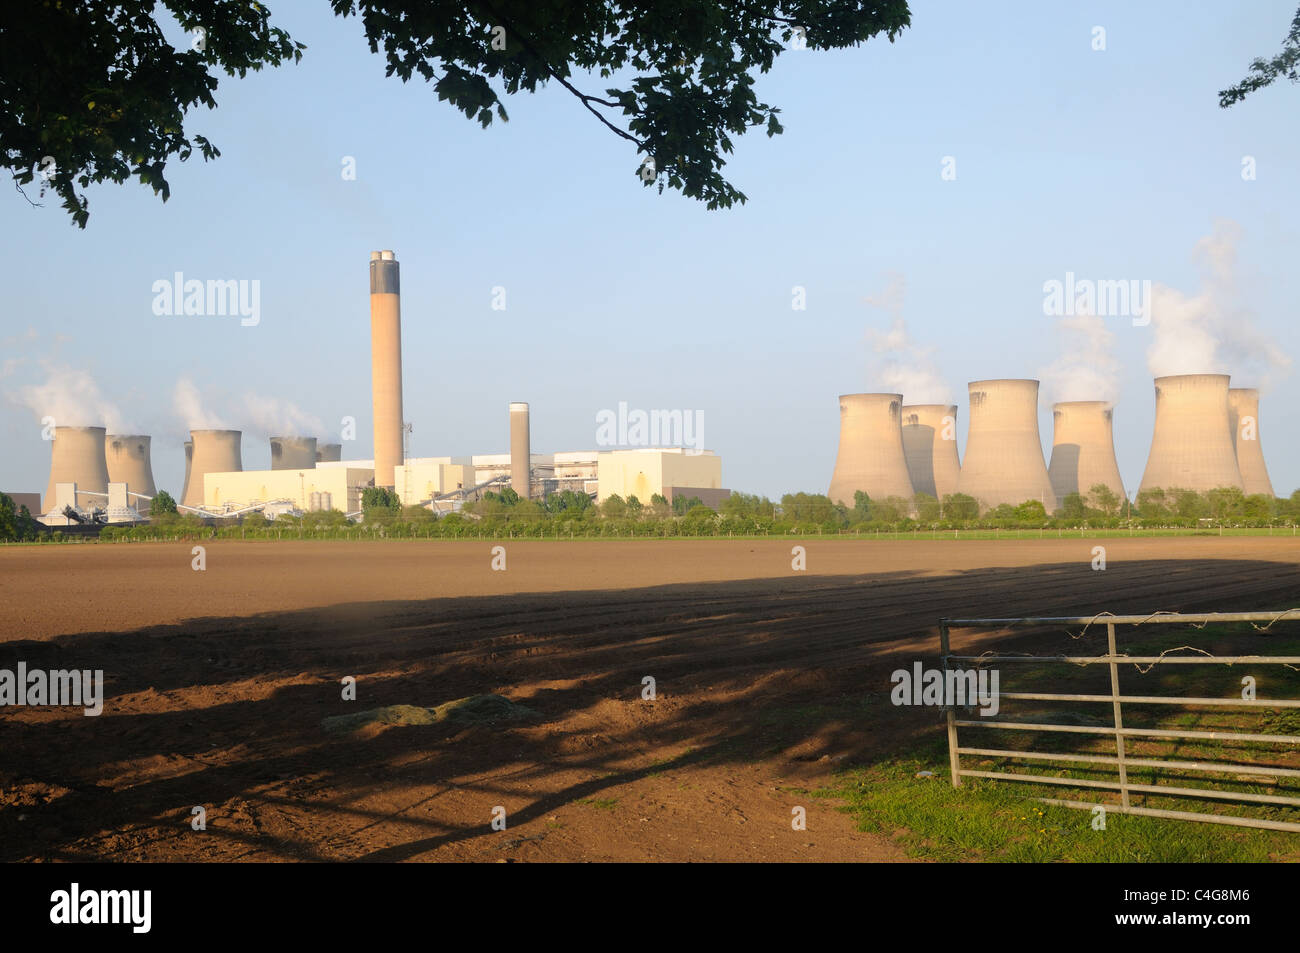 Drax Power Station, from Camblesforth, Yorkshire, England - Stock Image